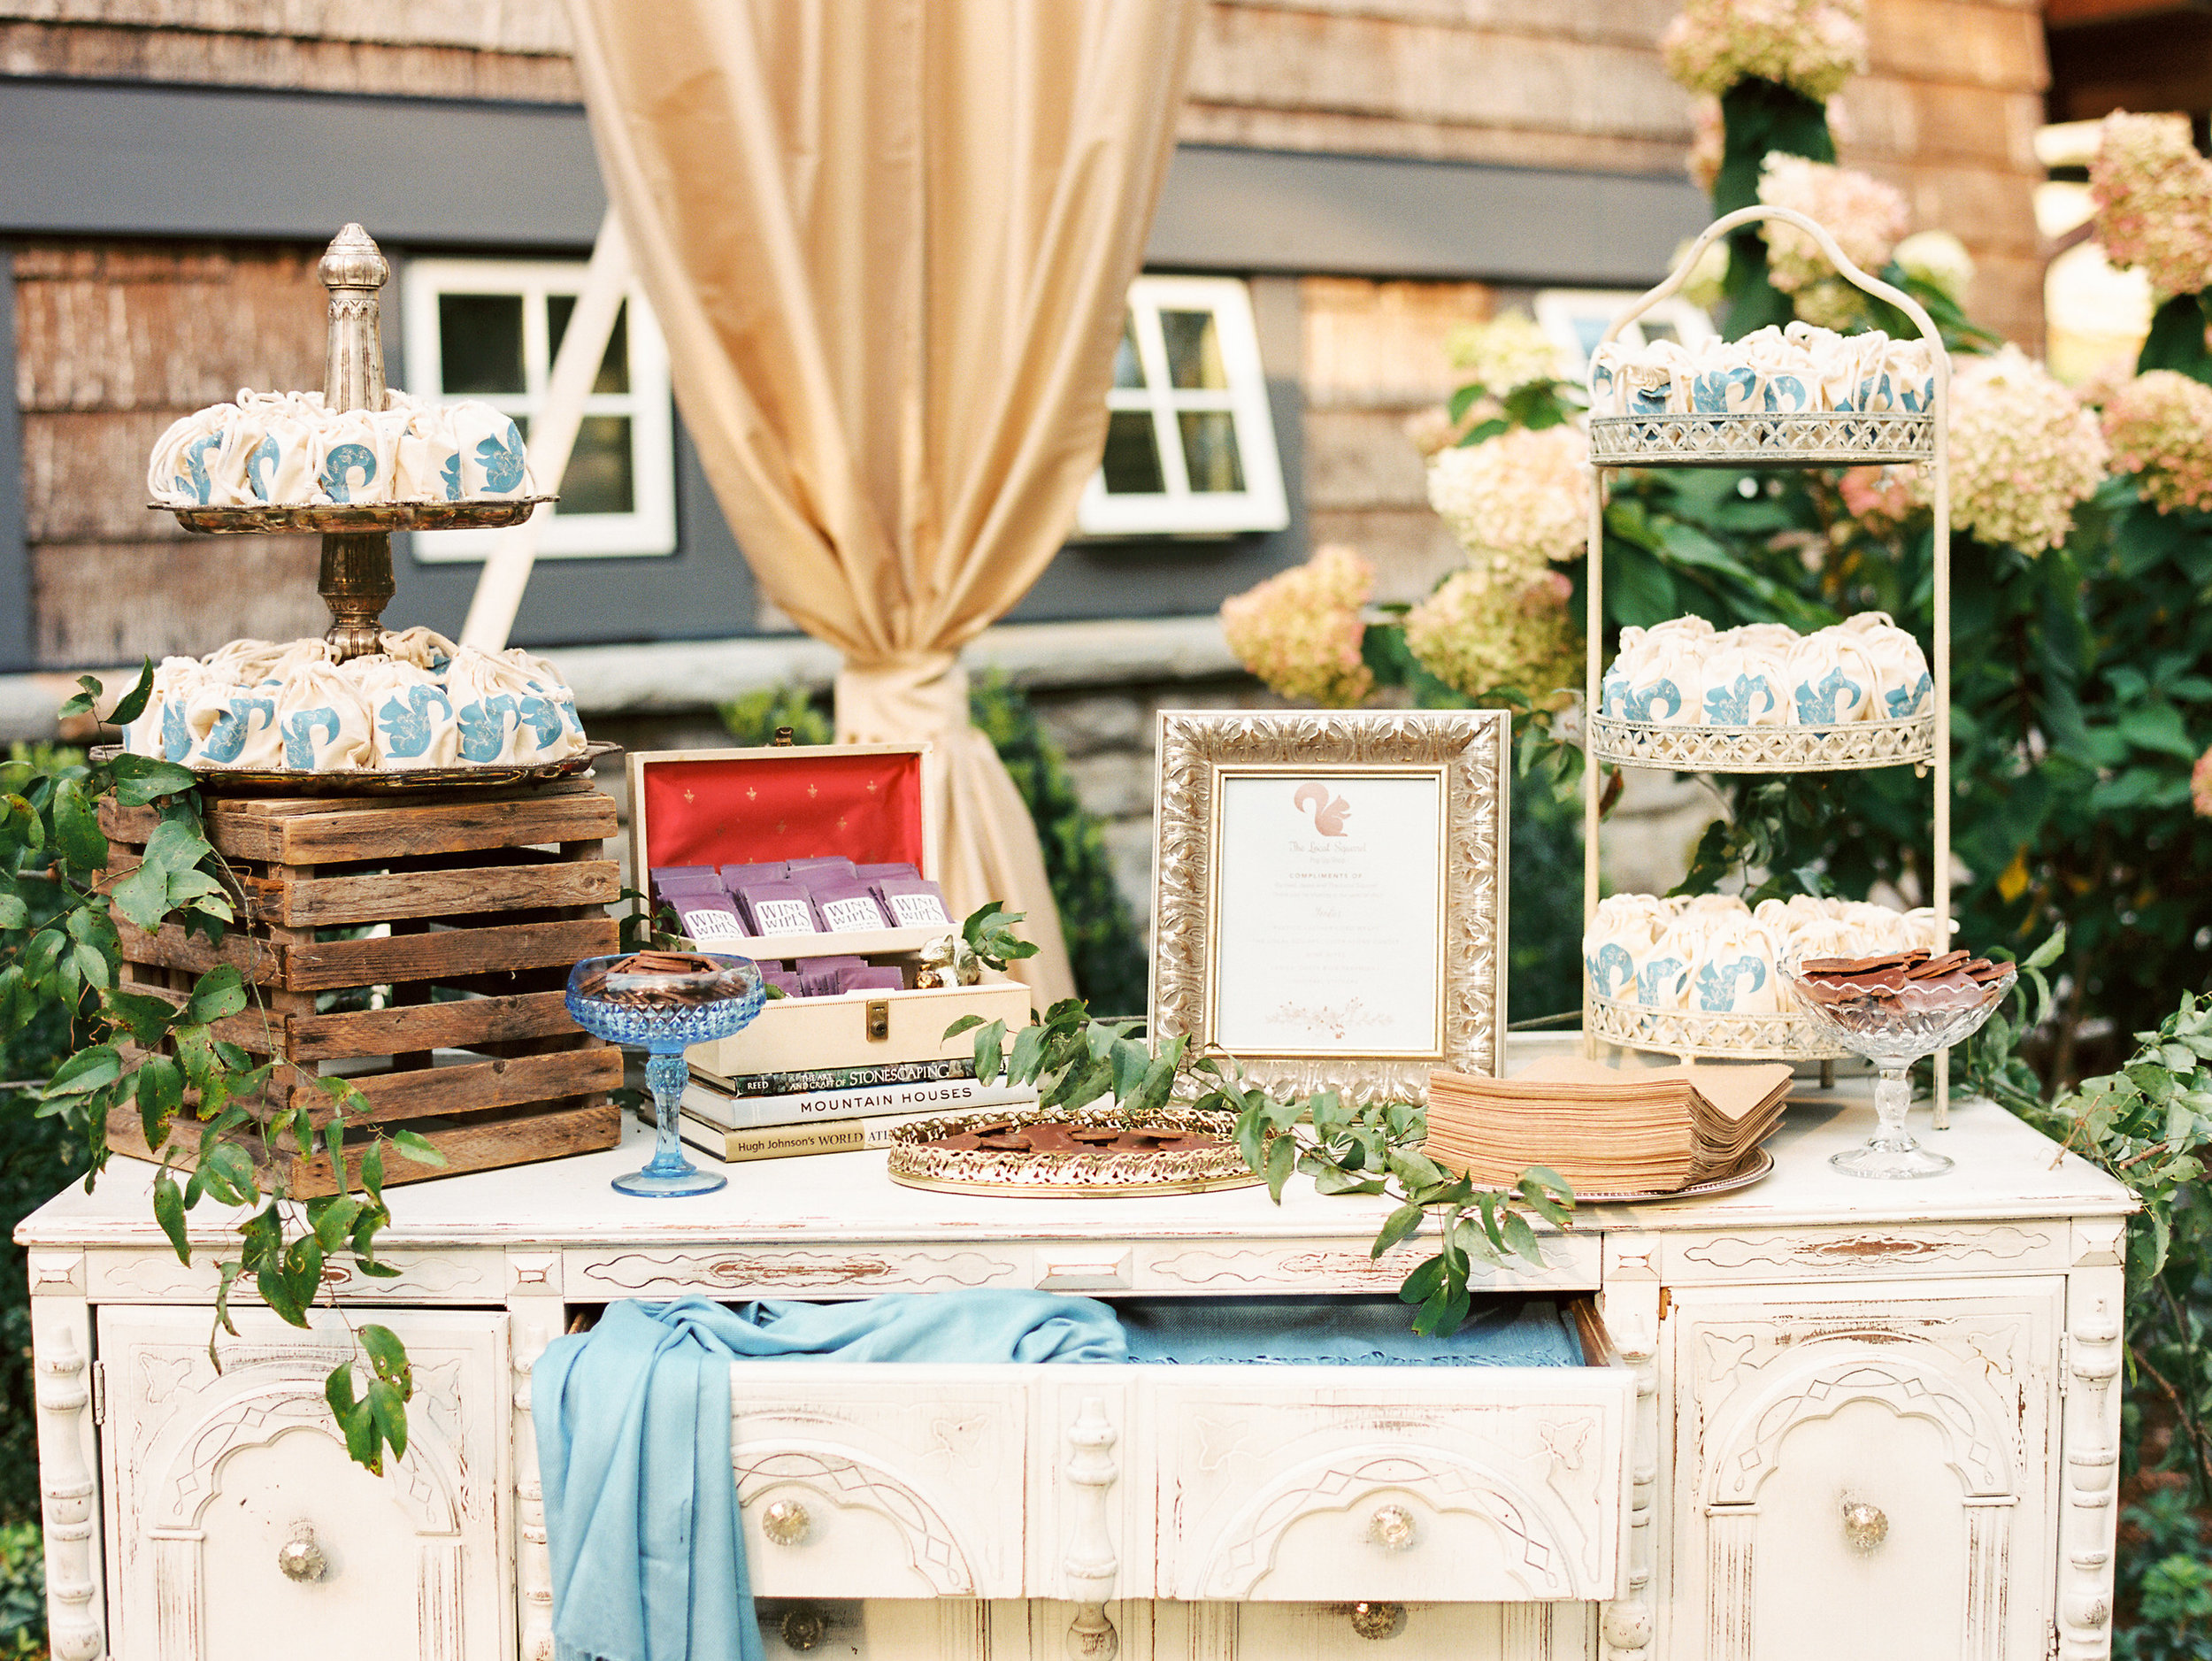 47160-ncmountainhomeweddingreceptionfavorsvintagefurniturencmountainhomeweddingreceptionfavorsvintagefurniture.jpg